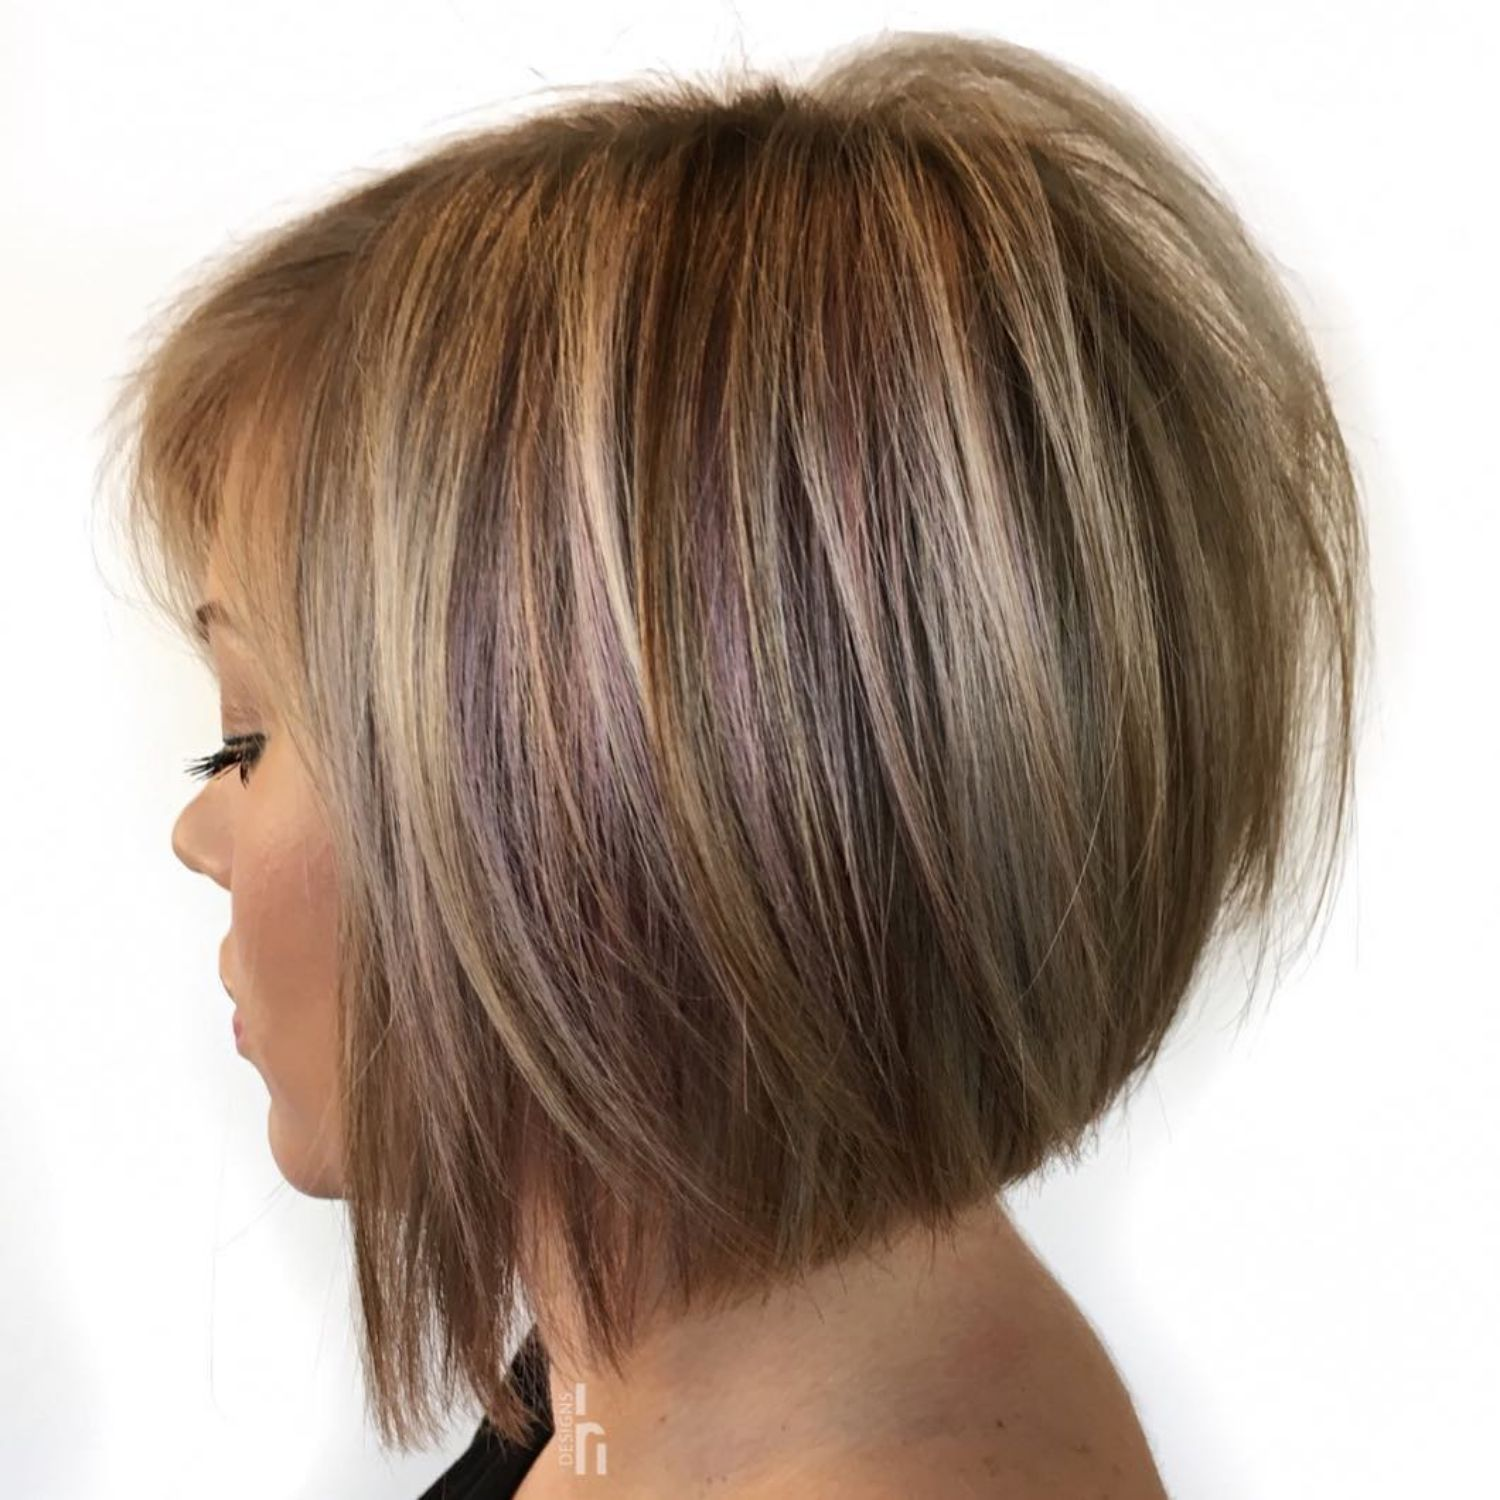 Unique Small Forearm In 2020 Angled Bob Hairstyles Bob Hairstyles For Thick Angled Bob Haircuts